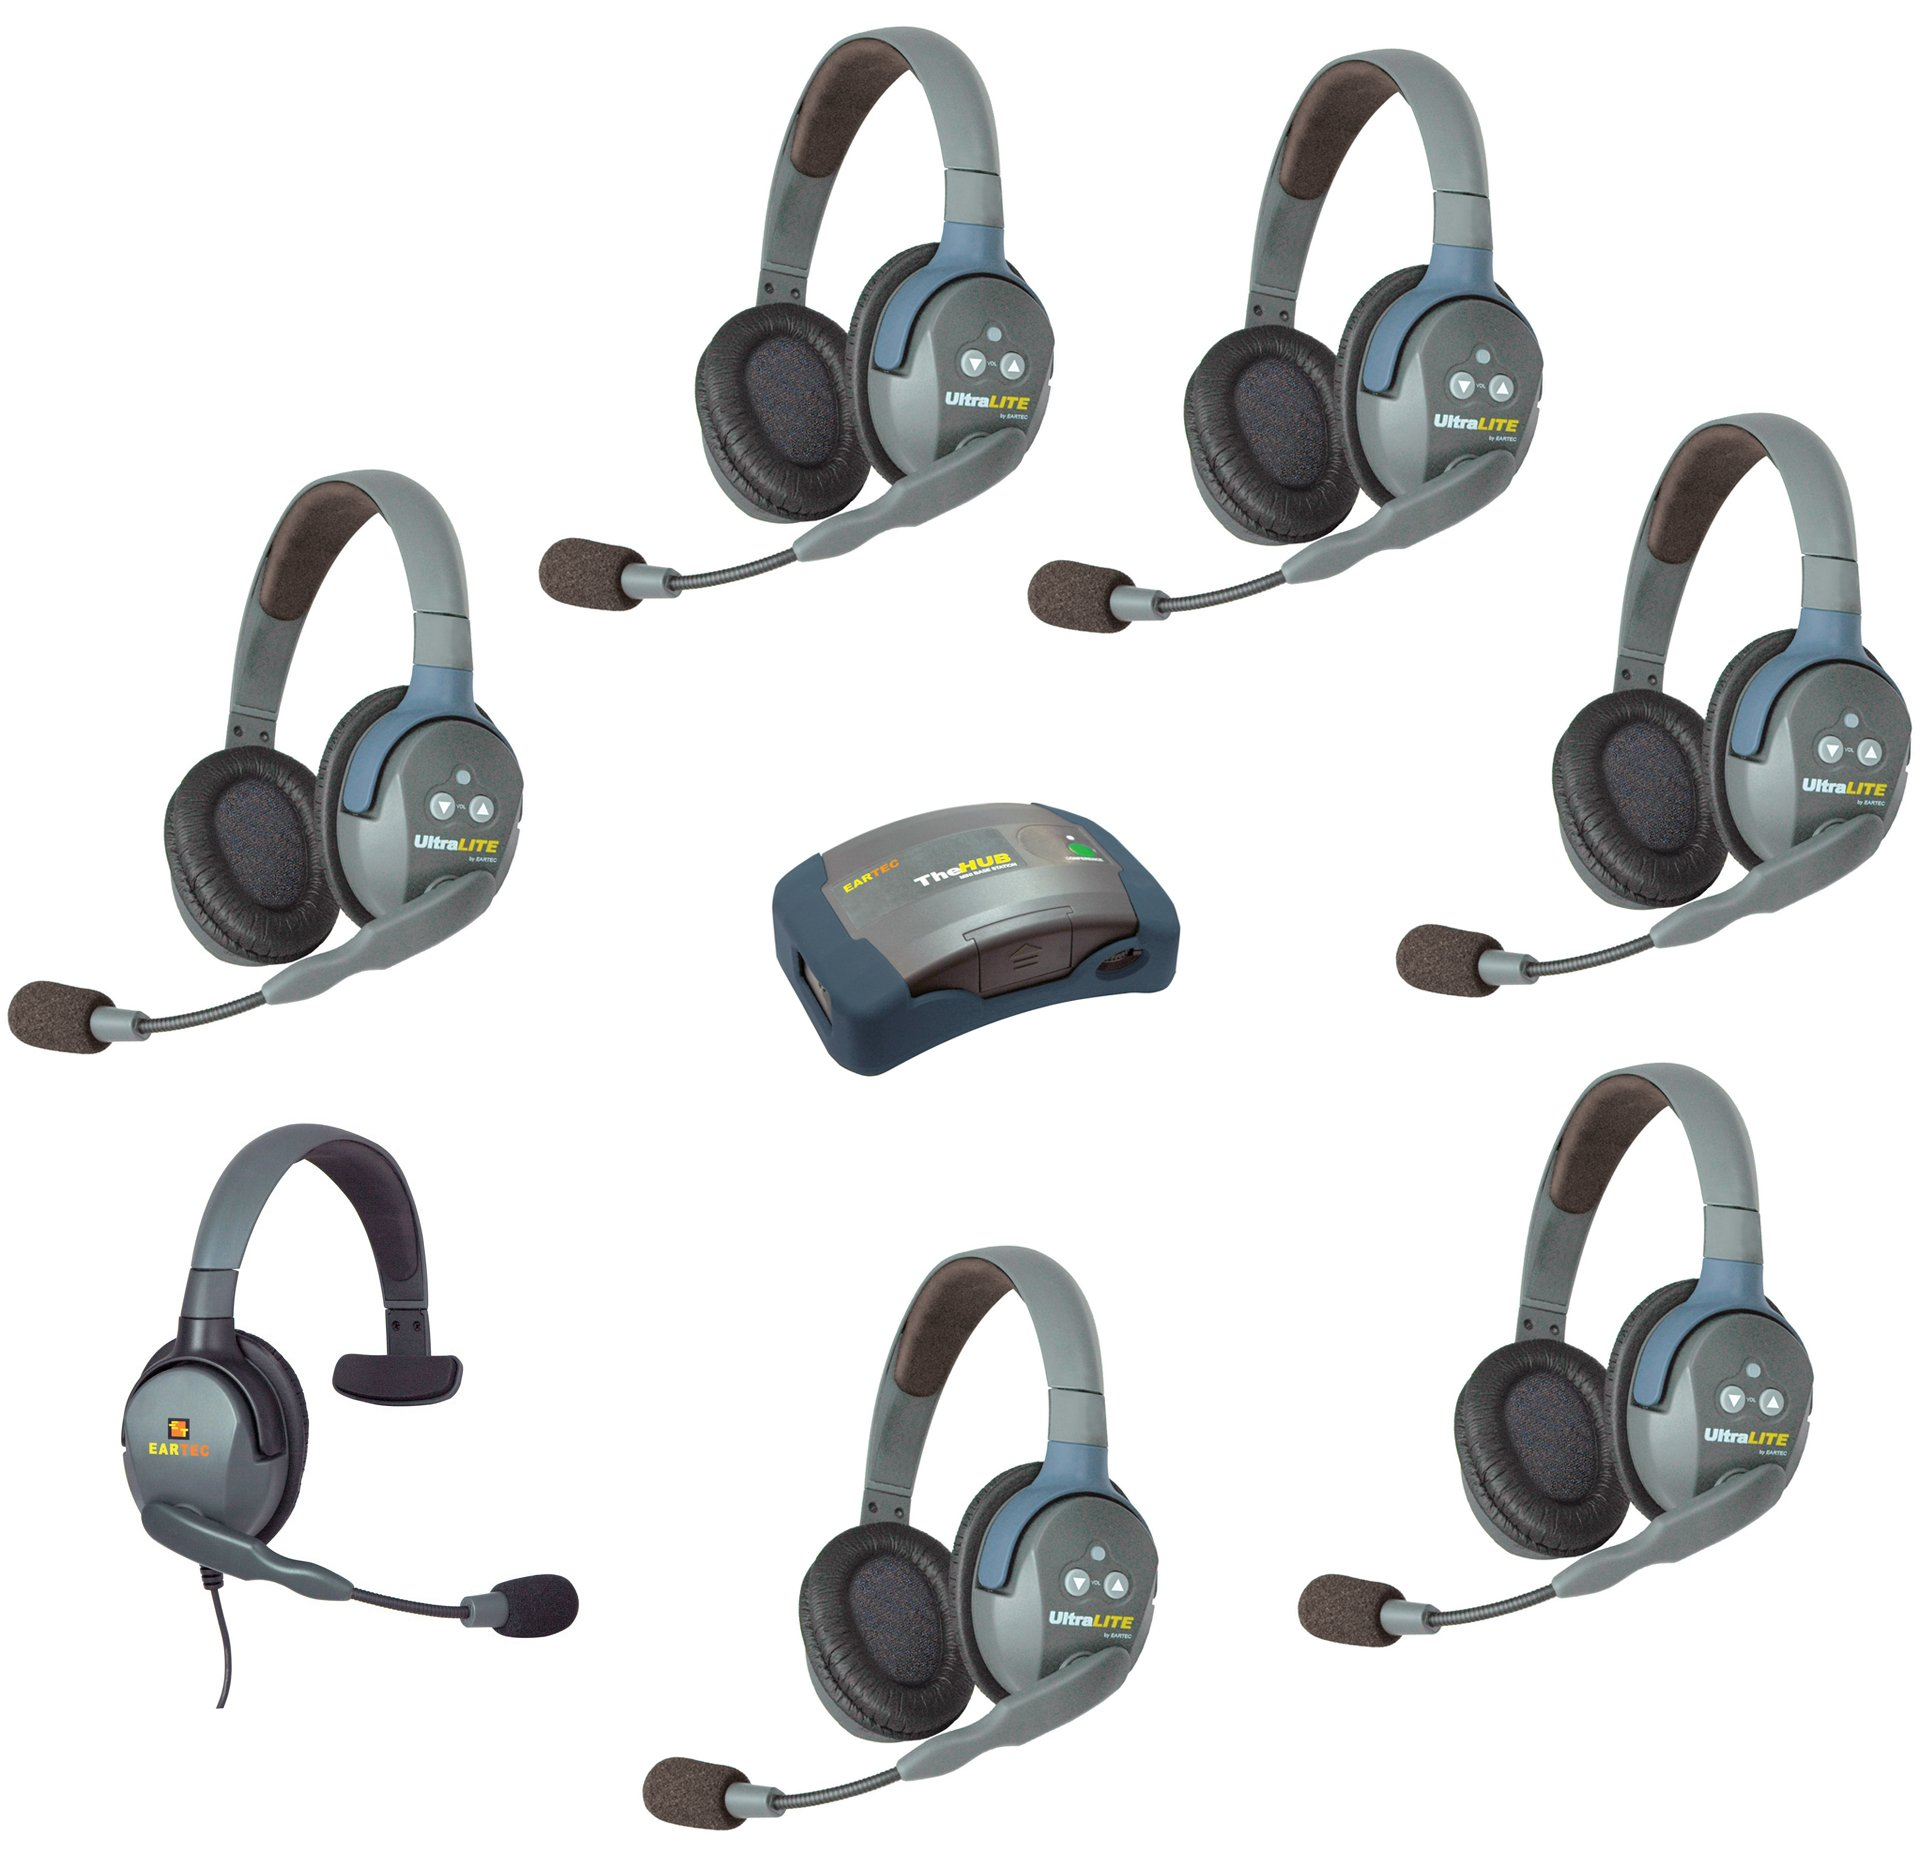 Eartec HUB7DMXS - 7 Person System with 6 Double Wireless Communication Headsets, 1 Max4G Single Headset and 1 HUB Mini Base Transceiver